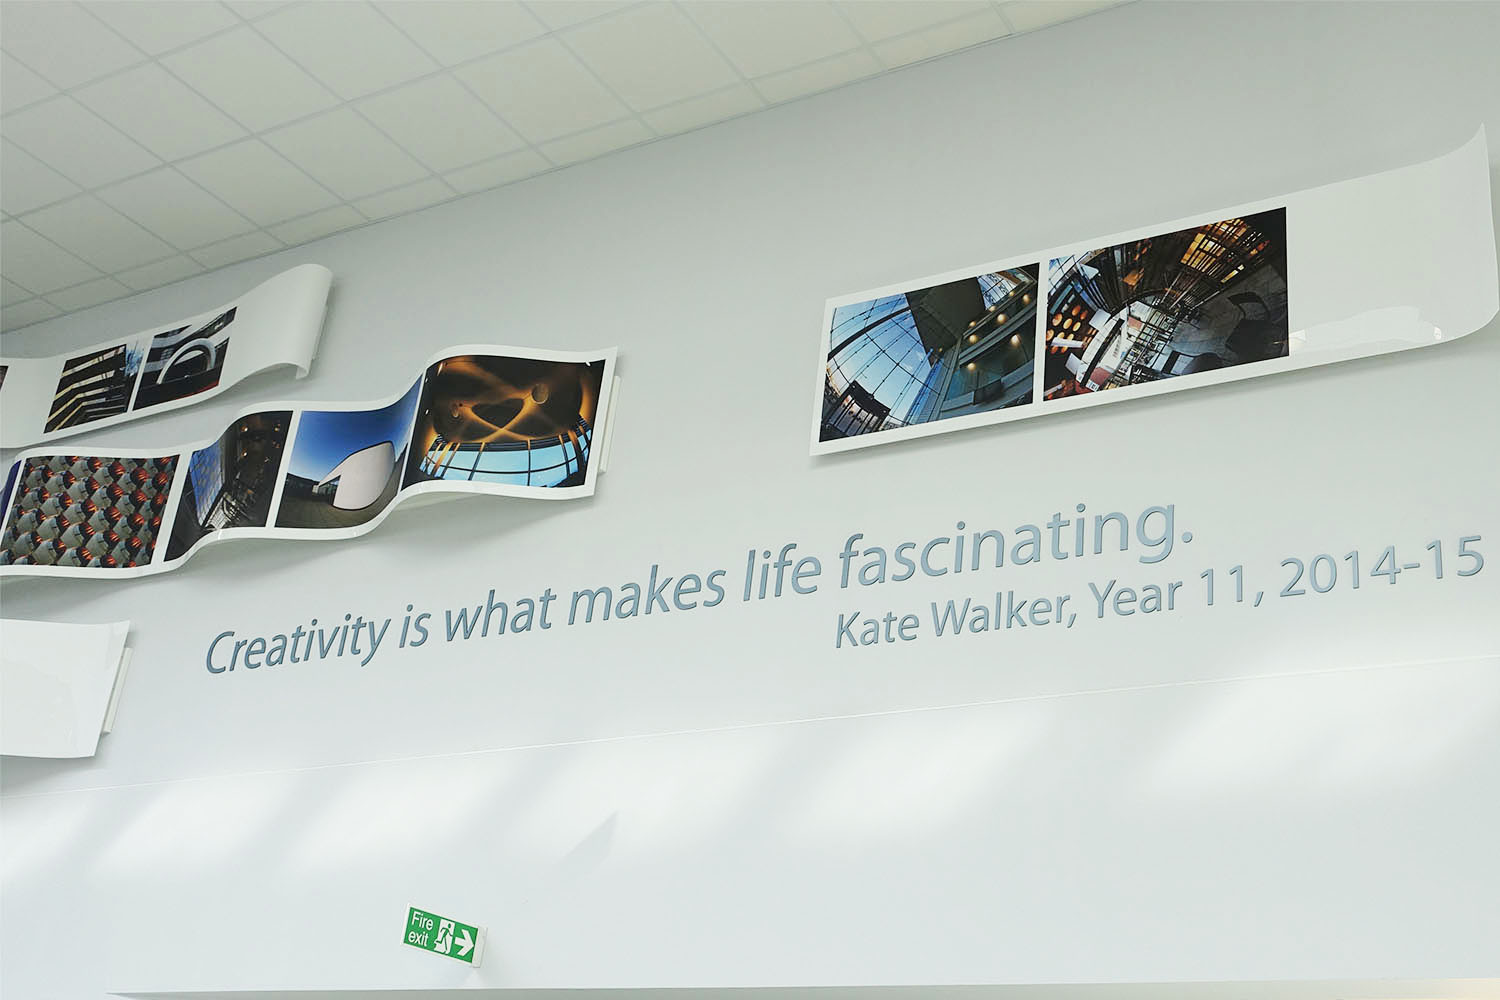 kelvin hall artwork installation close up of quote